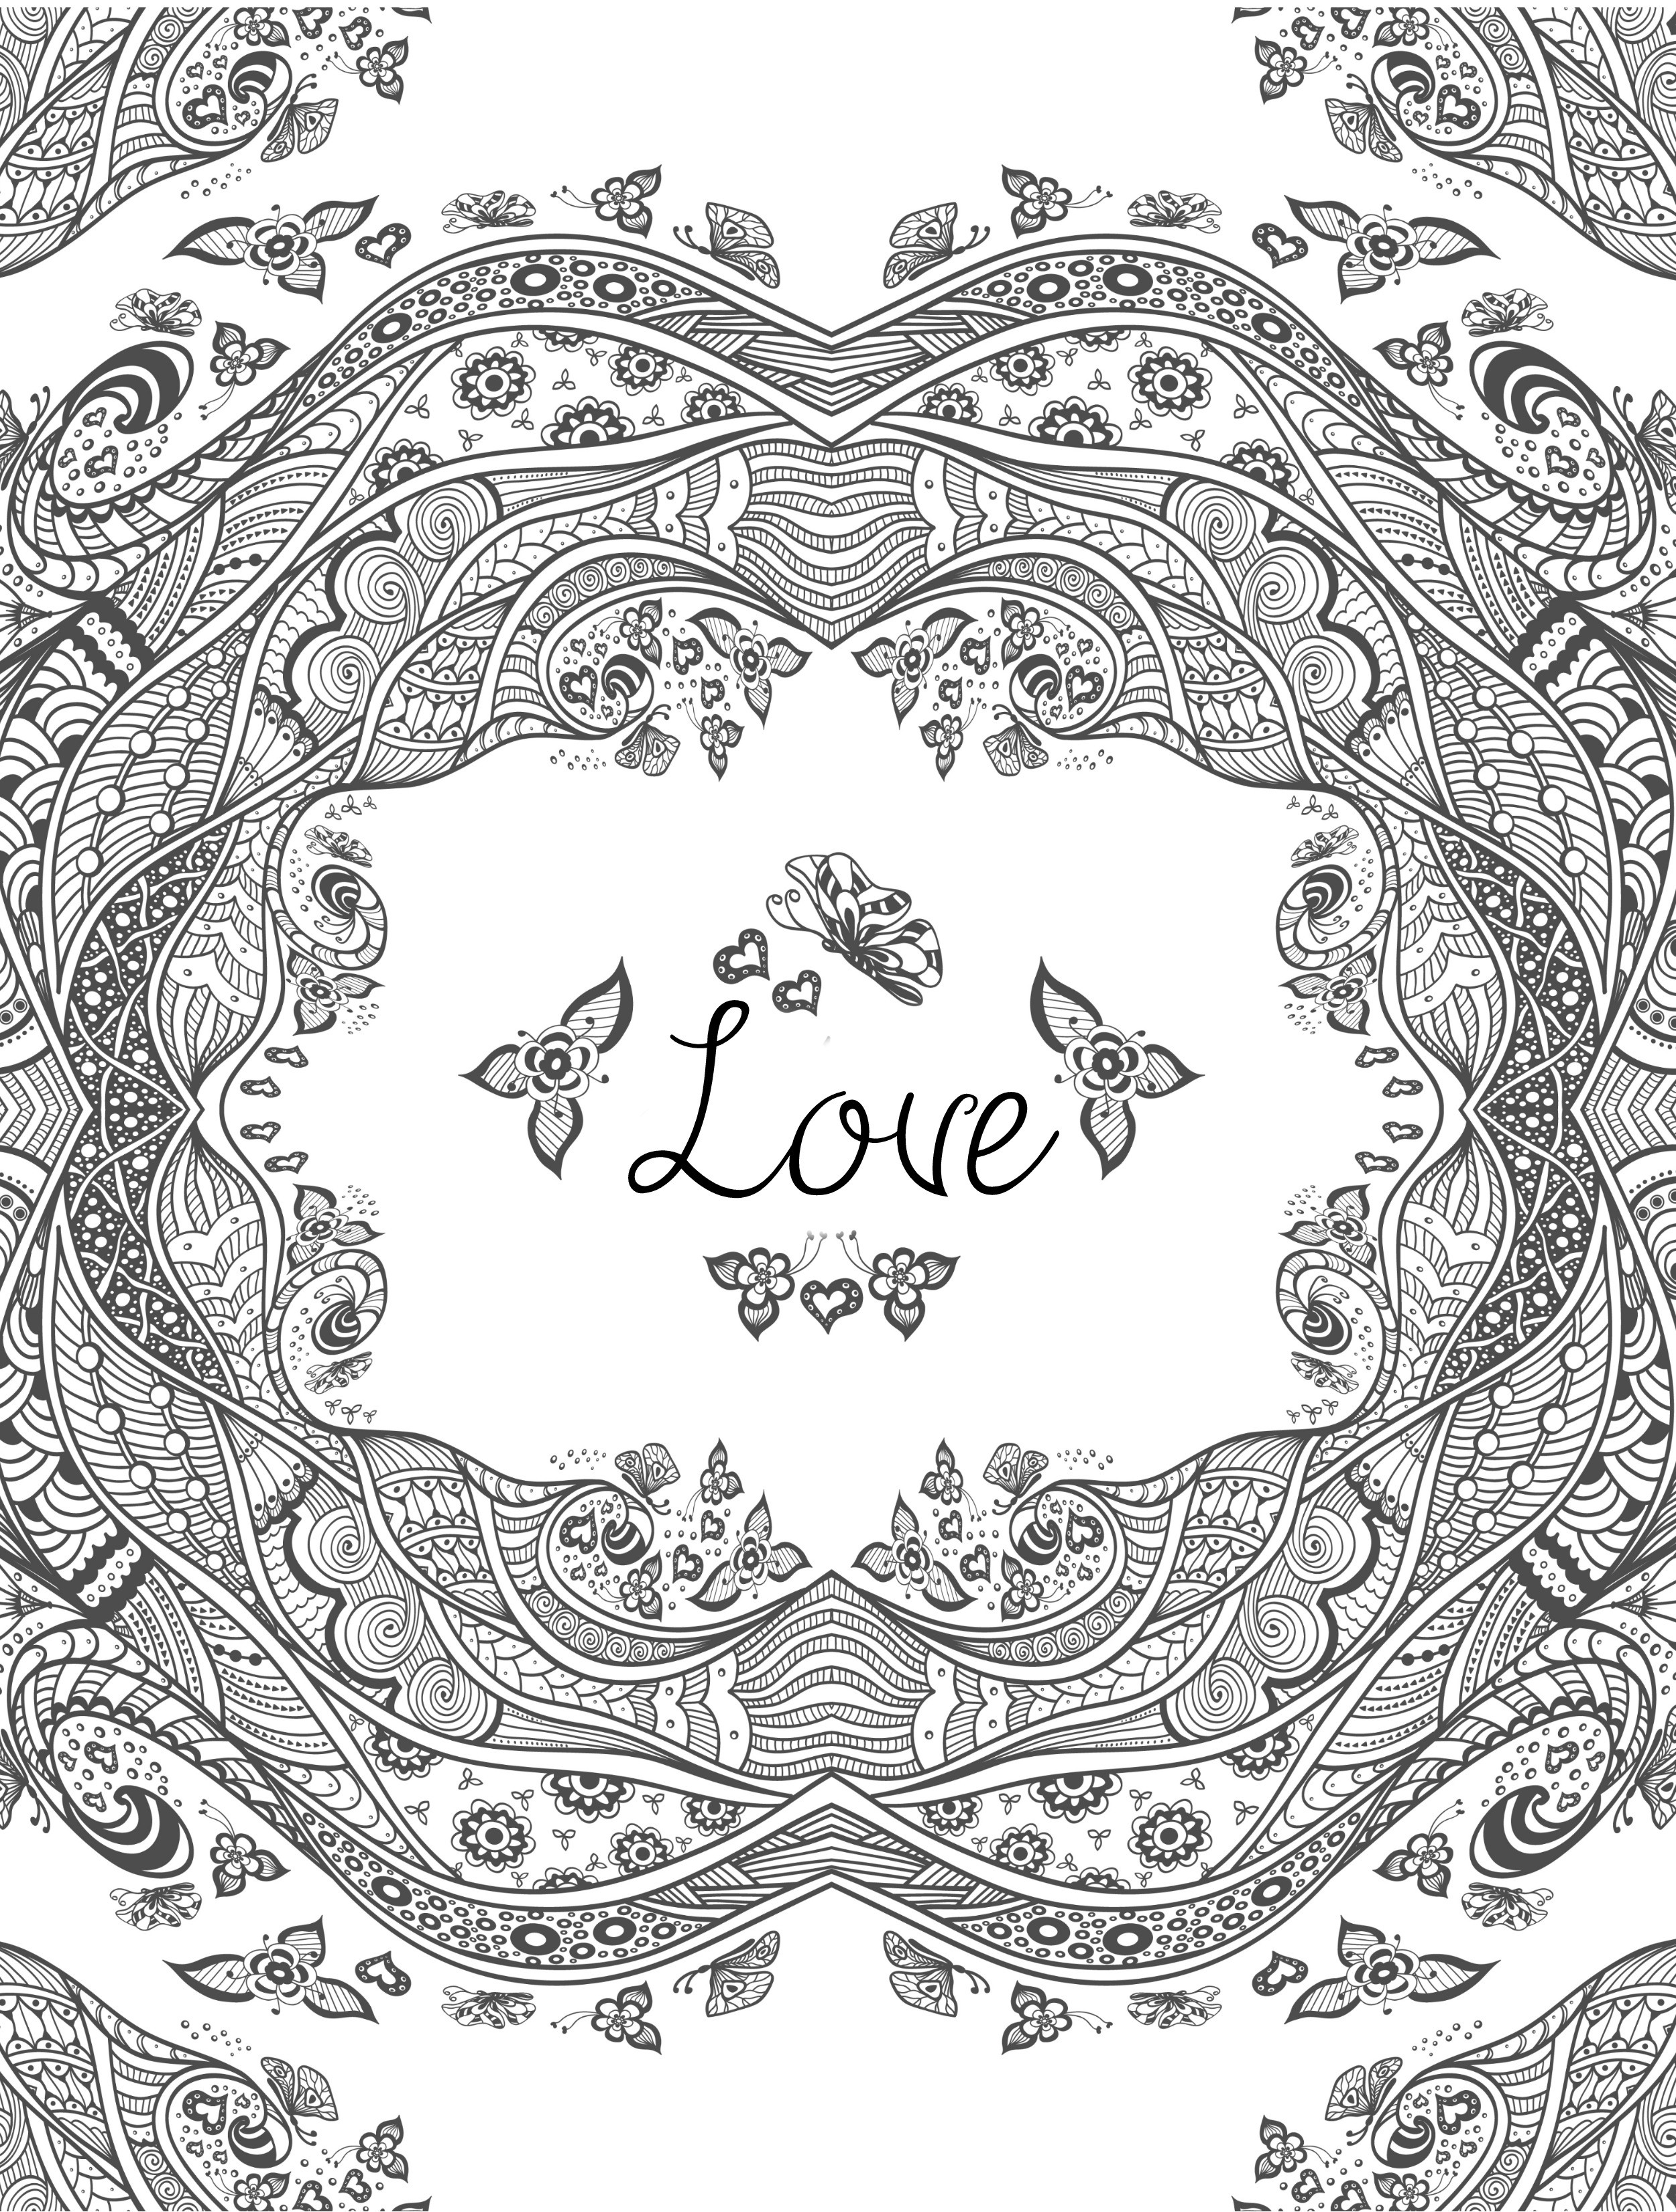 Best ideas about Free Printable Coloring Pages For Adults Only Pdf . Save or Pin 20 Free Printable Valentines Adult Coloring Pages Nerdy Now.